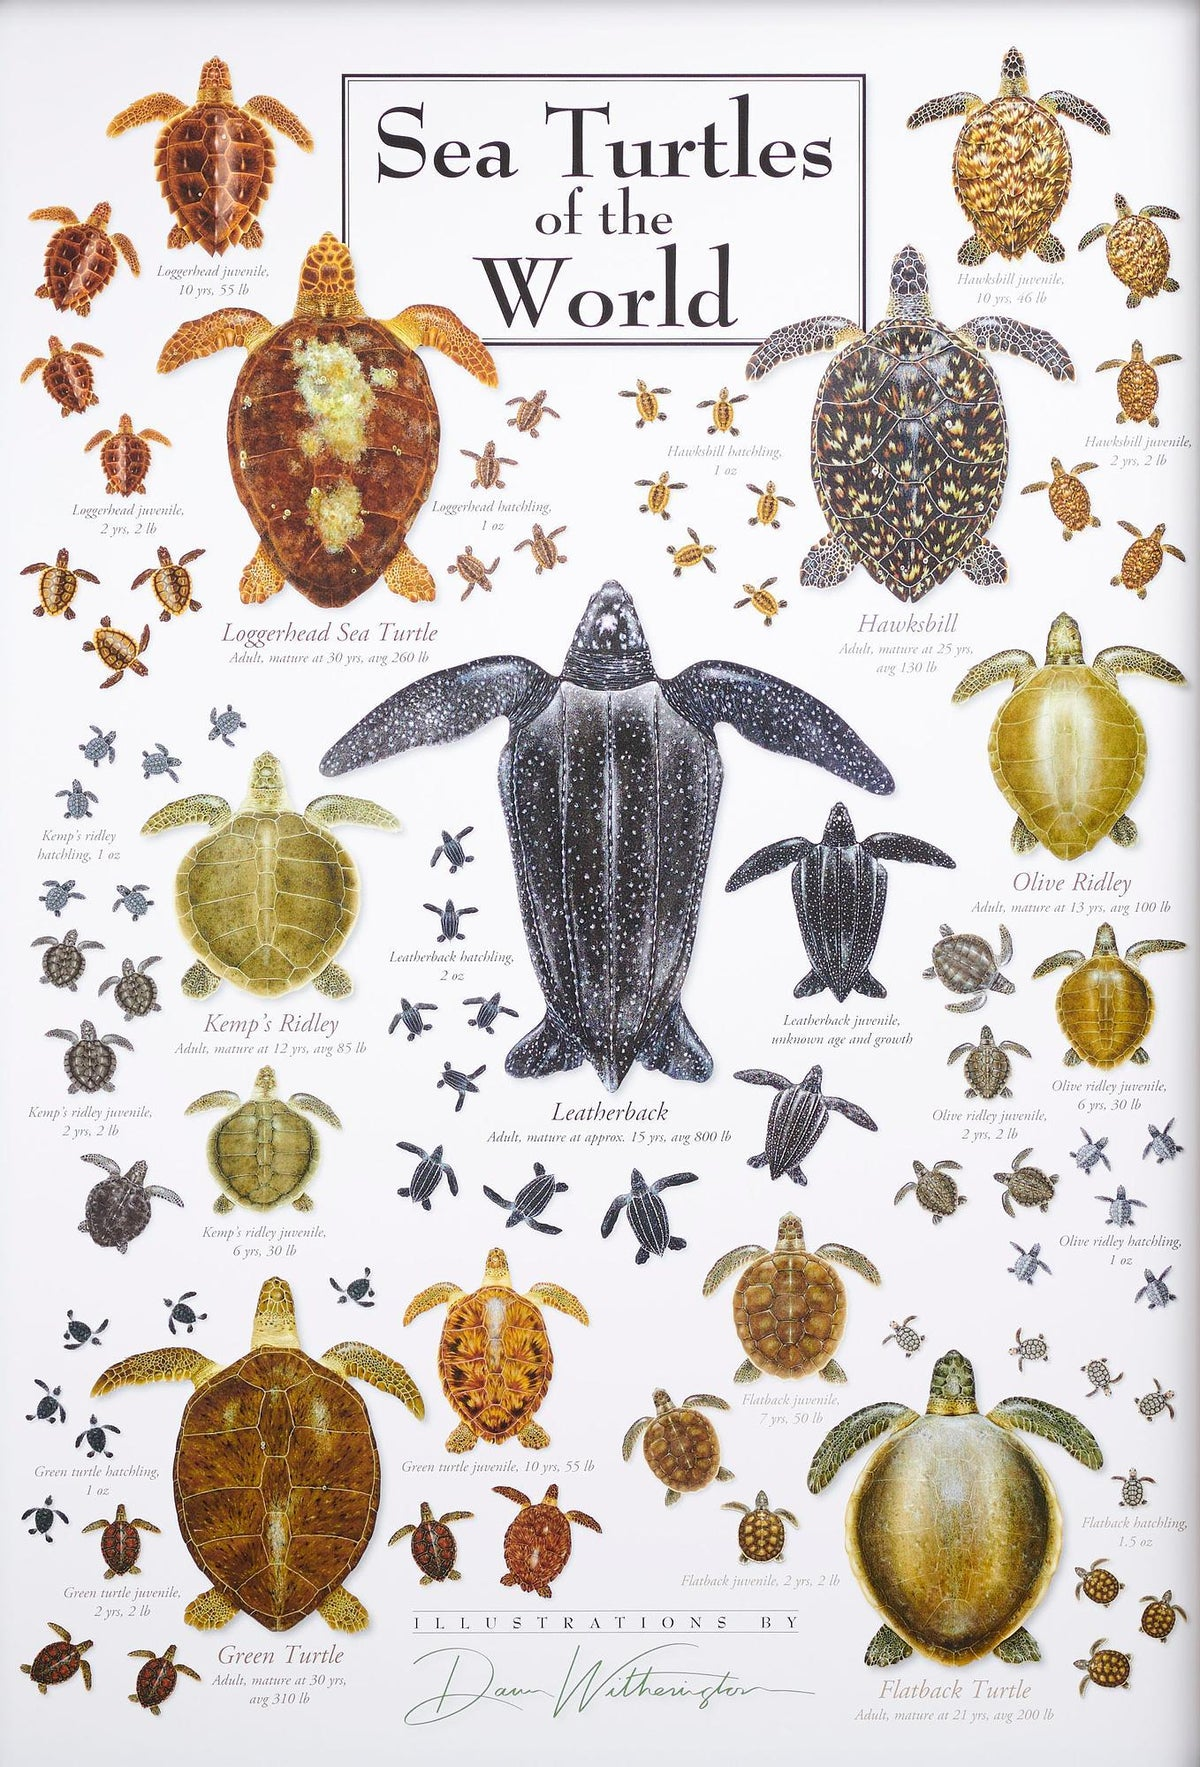 Sea Turtles of the World.